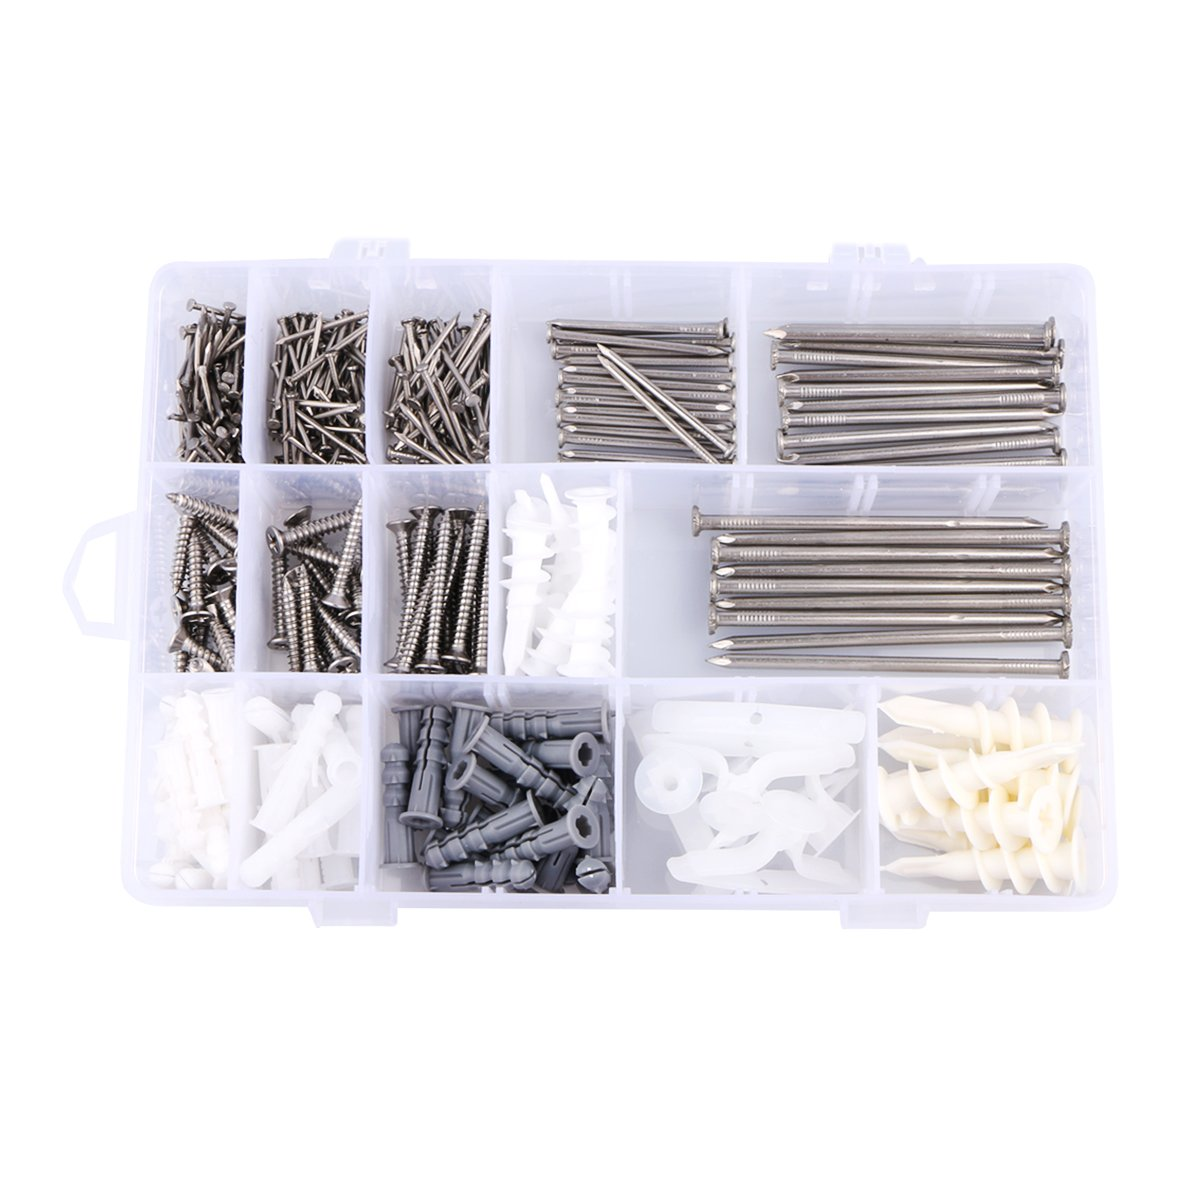 Nail and Plastic Anchor Assortment Kit with Wire Nail, Screws, Drywall and Hollow Wall Anchors